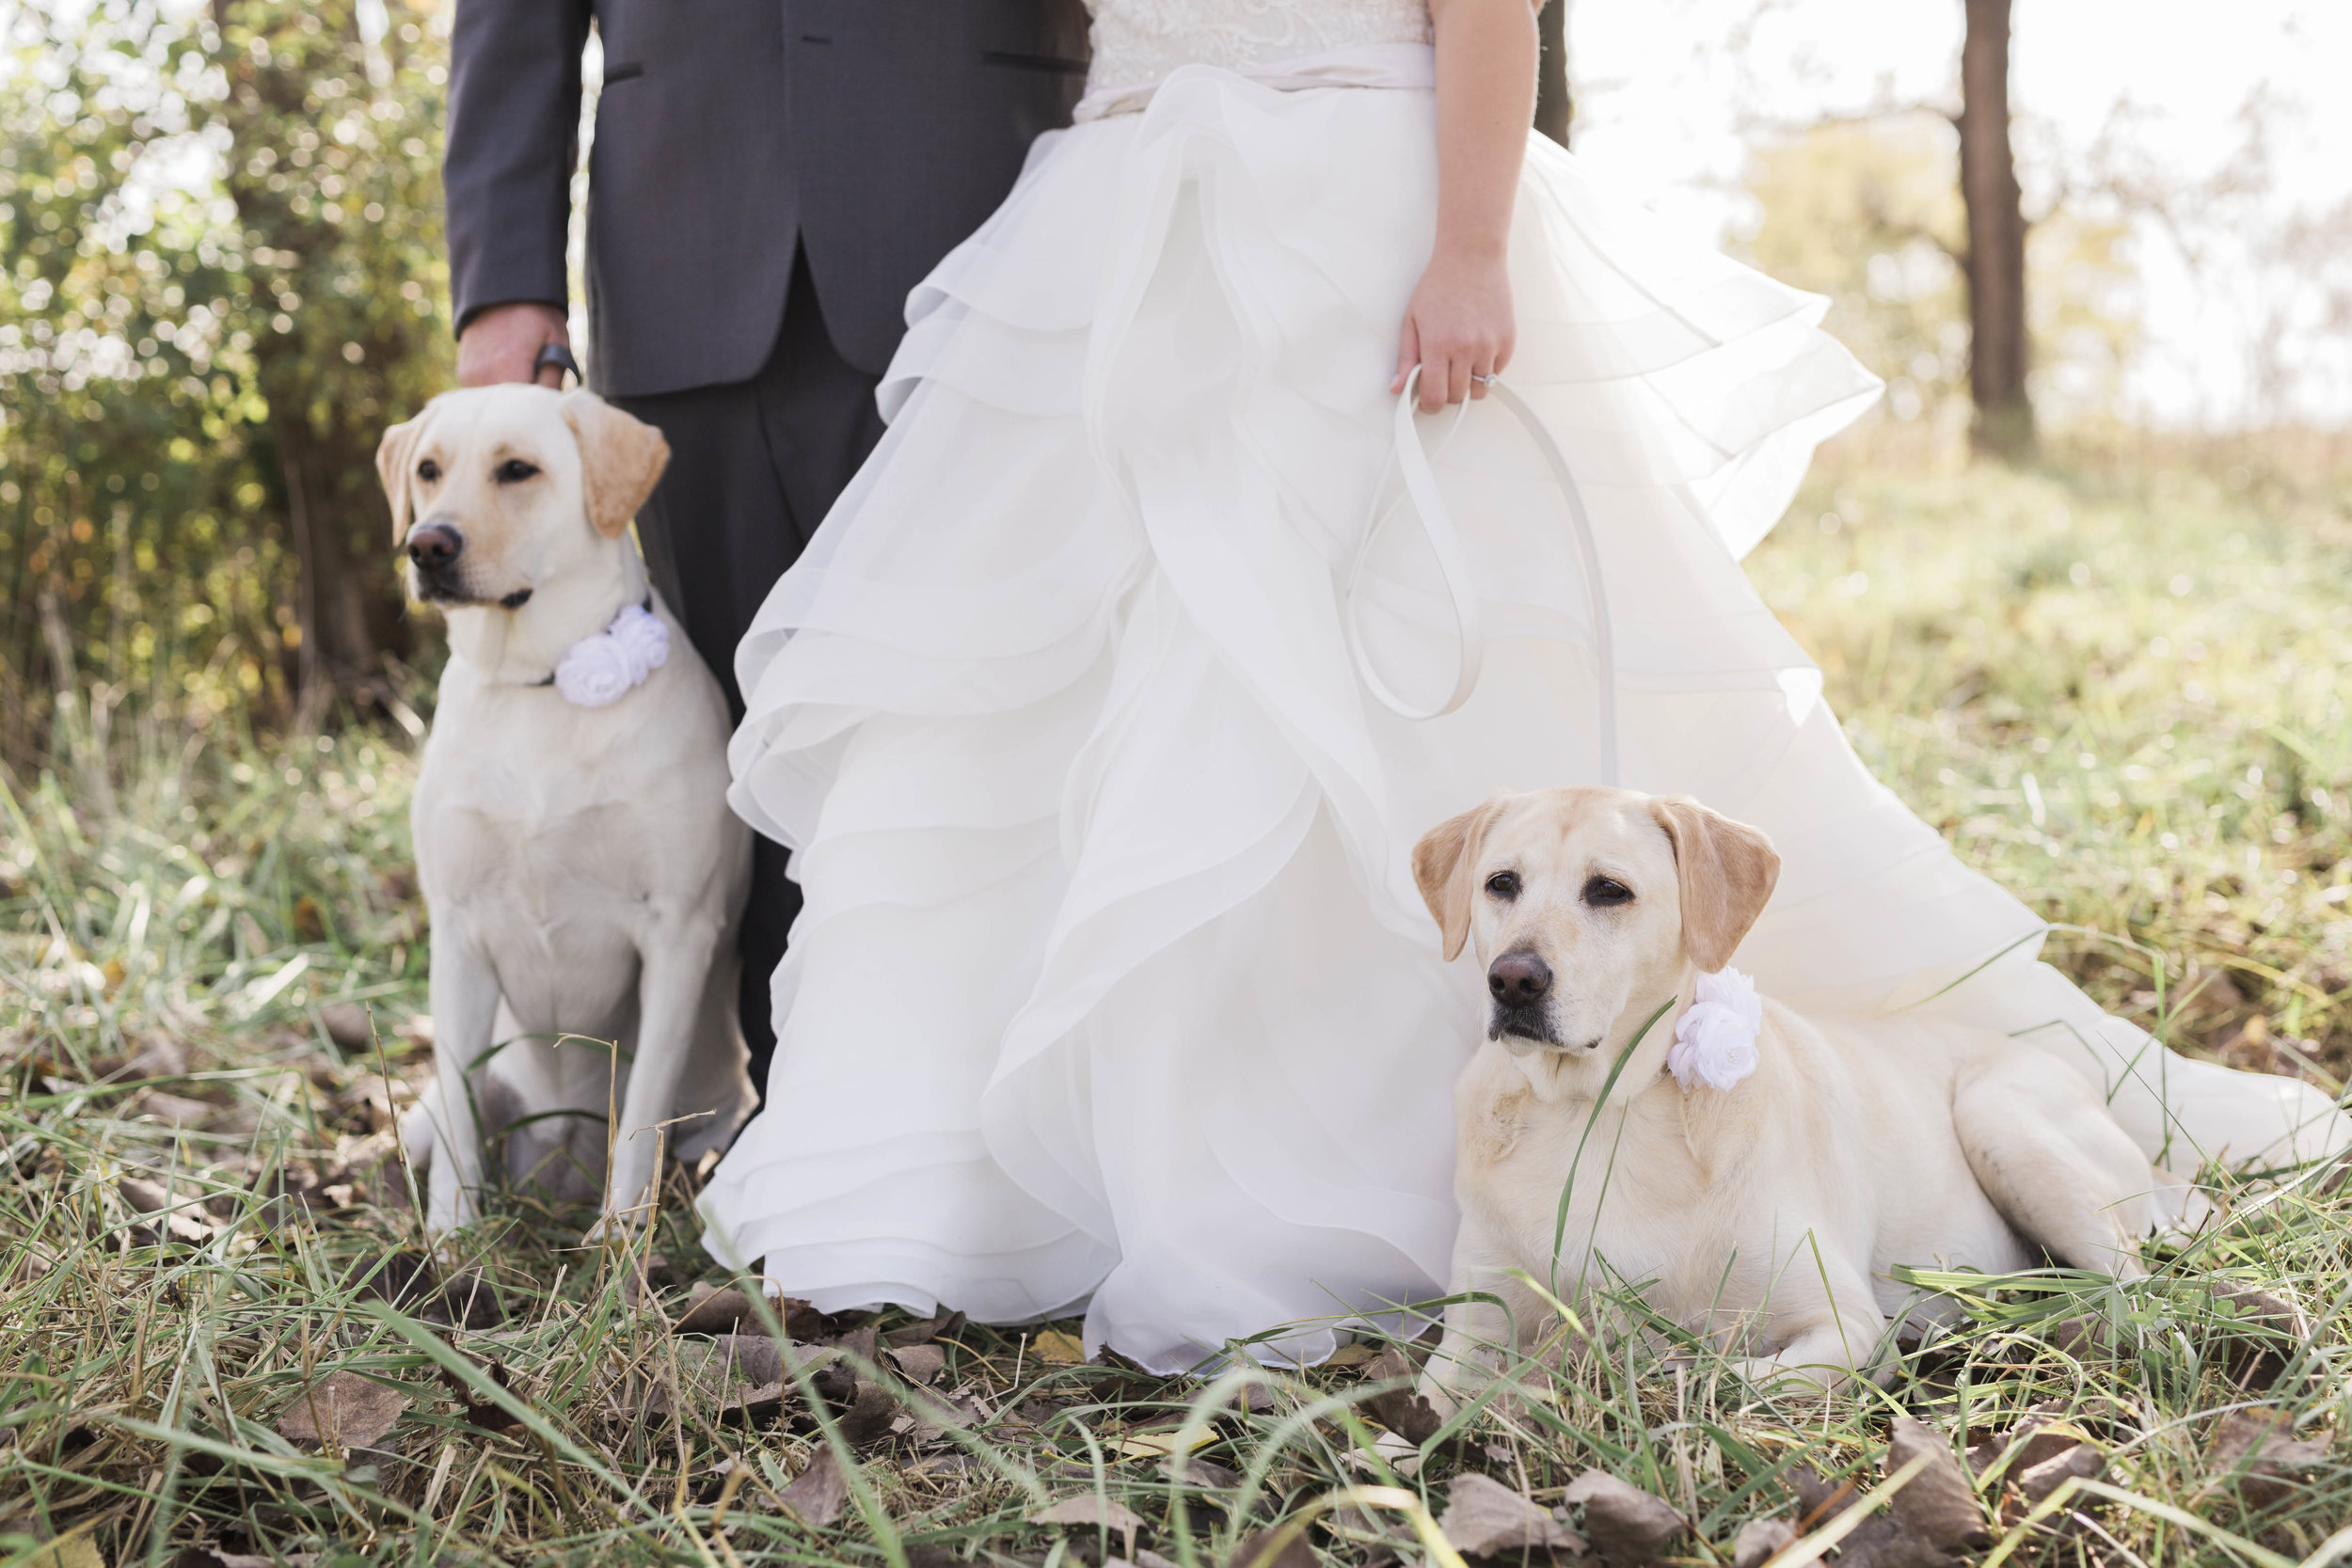 blog_dog_in_wedding-4.jpg